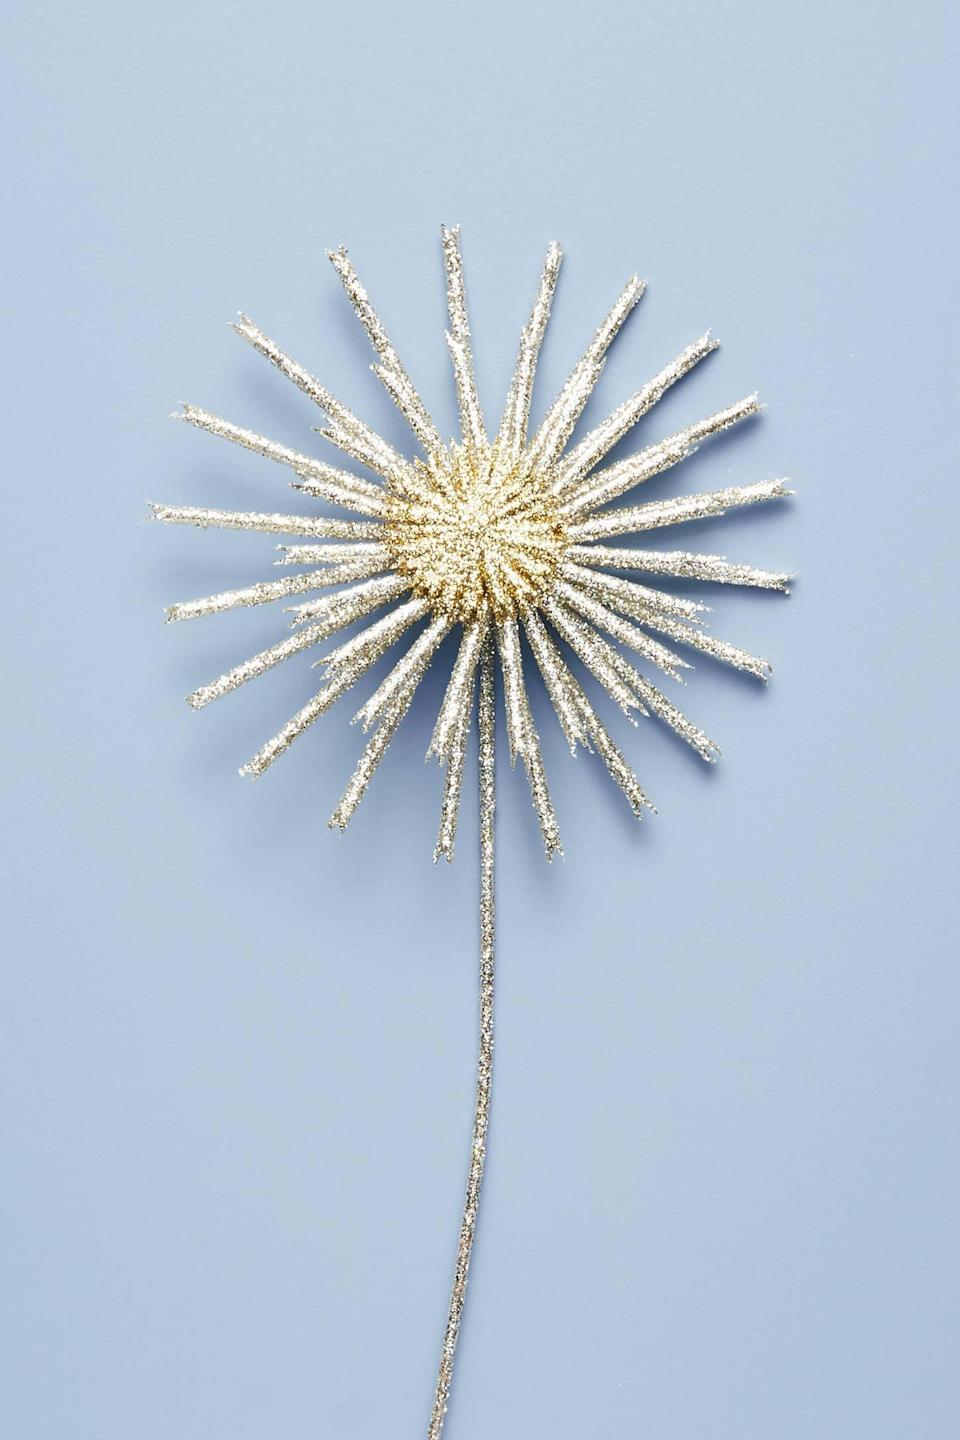 """<p>Make your tree look like royalty with the glittery <a href=""""https://www.popsugar.com/buy/Royal-Starburst-Tree-Topper-490578?p_name=Royal%20Starburst%20Tree%20Topper&retailer=anthropologie.com&pid=490578&price=28&evar1=casa%3Aus&evar9=46615300&evar98=https%3A%2F%2Fwww.popsugar.com%2Fhome%2Fphoto-gallery%2F46615300%2Fimage%2F46615449%2FRoyal-Starburst-Tree-Topper&list1=shopping%2Canthropologie%2Choliday%2Cchristmas%2Cchristmas%20decorations%2Choliday%20decor%2Chome%20shopping&prop13=mobile&pdata=1"""" rel=""""nofollow noopener"""" class=""""link rapid-noclick-resp"""" target=""""_blank"""" data-ylk=""""slk:Royal Starburst Tree Topper"""">Royal Starburst Tree Topper</a> ($28).</p>"""